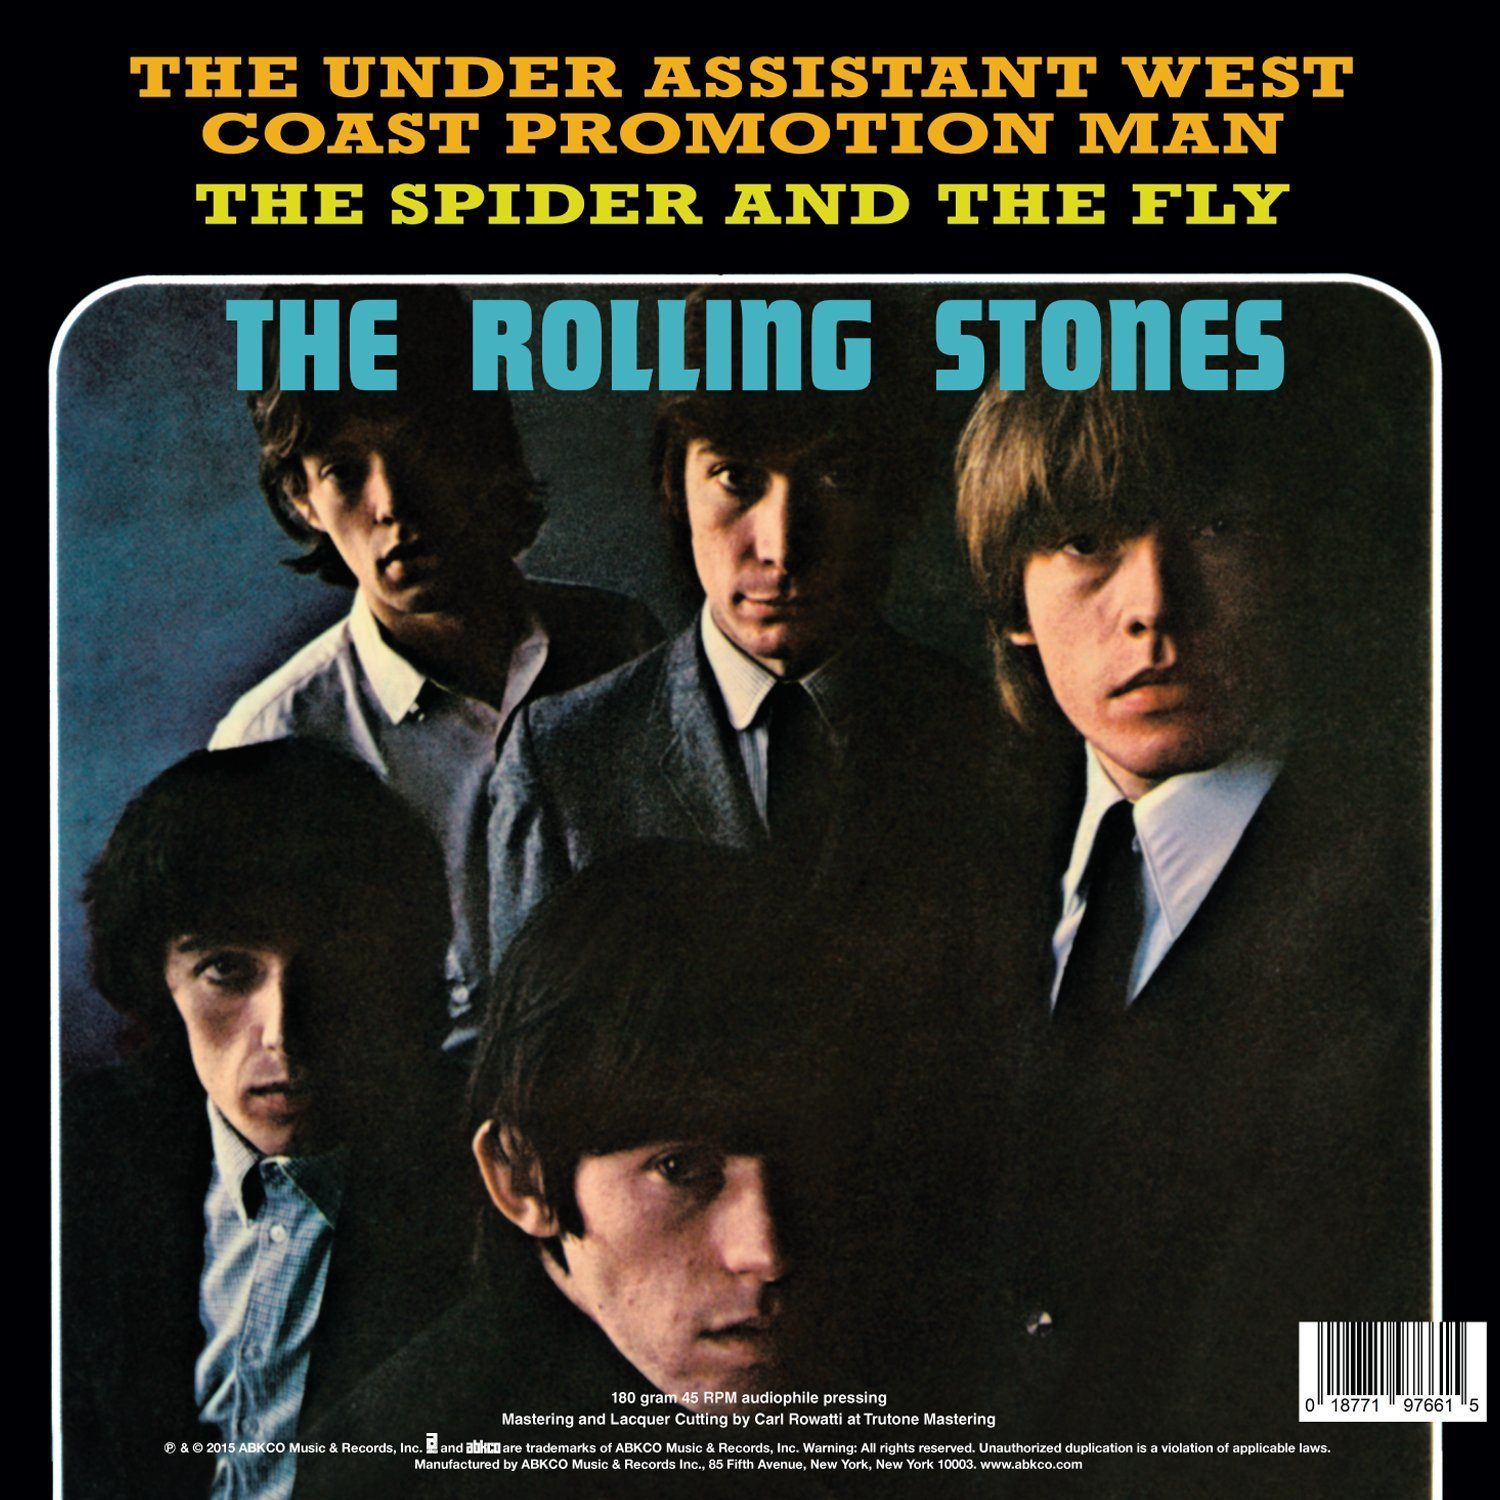 LP Vinil The Rolling Stones - I Can't Get No Satisfaction - Importado